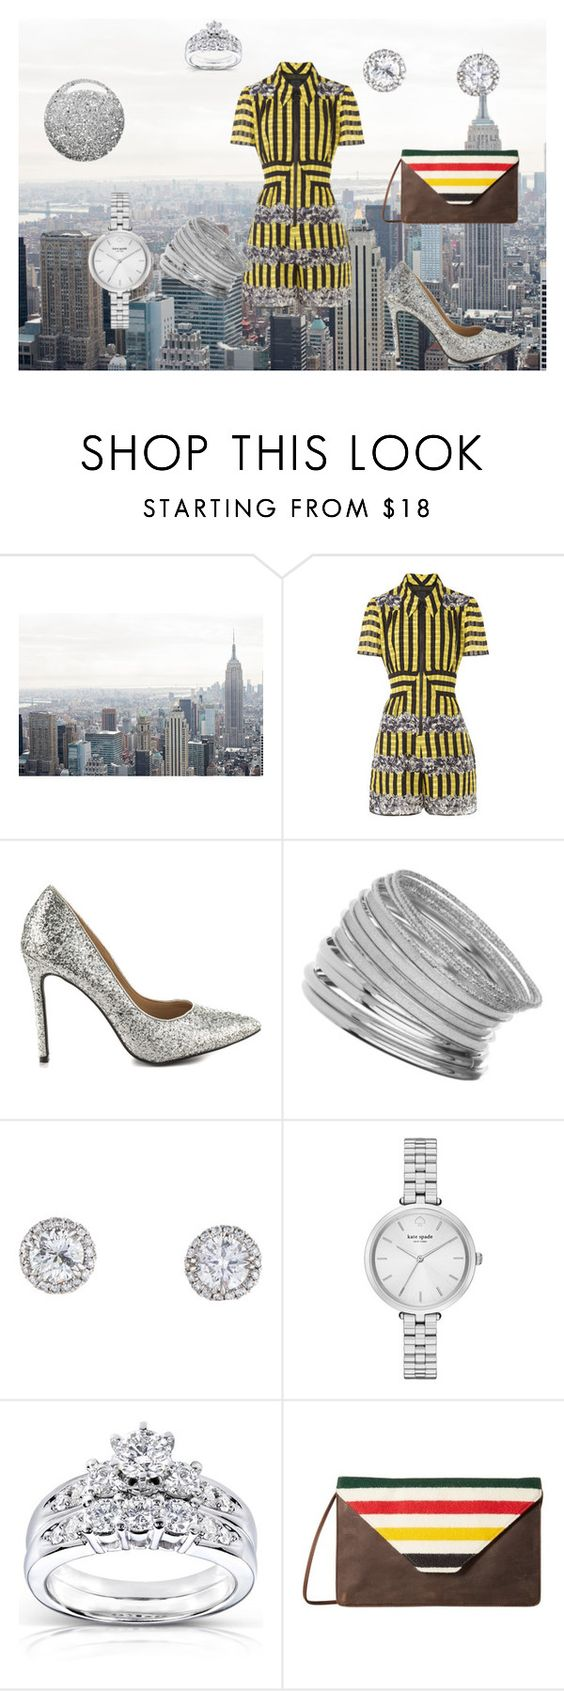 """""""Unbenannt #494"""" by christinejoanna ❤ liked on Polyvore featuring Anna Sui, Penny Loves Kenny, Miss Selfridge, Kate Spade, Kobelli, Pendleton, Topshop and romper"""